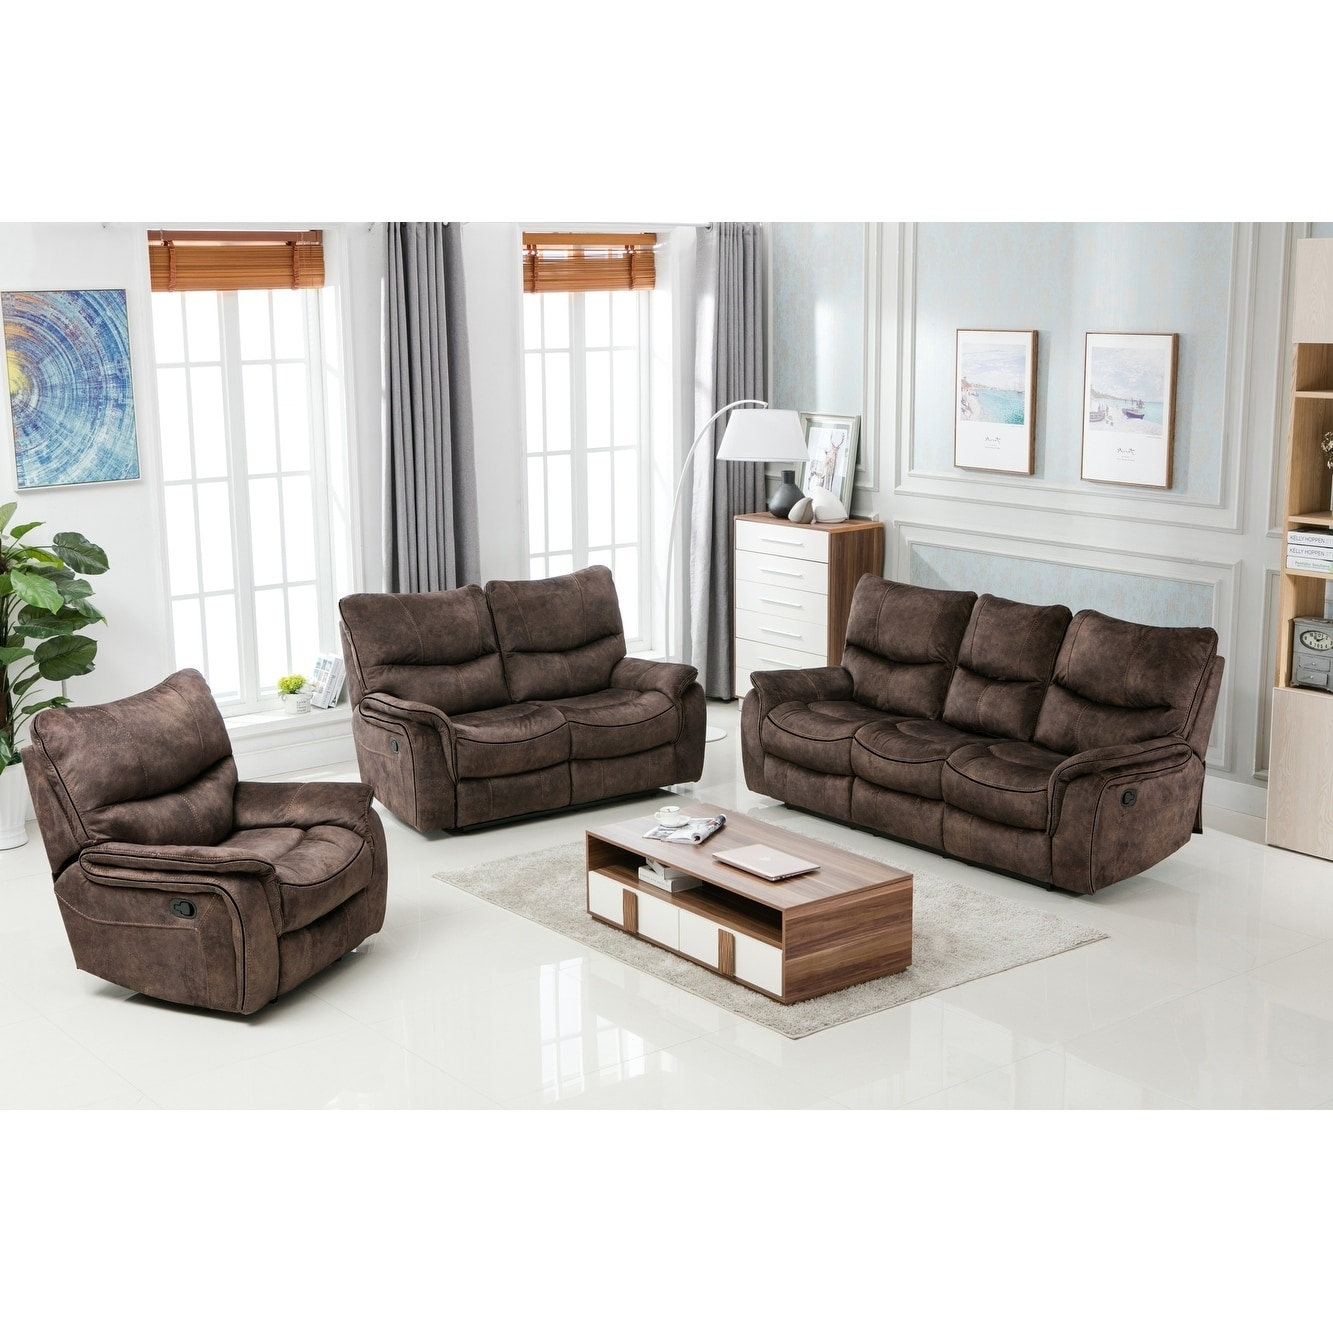 Shop gu industries palomino fabric upholstered 3 piece living room recliner sets on sale free shipping today overstock com 17783634